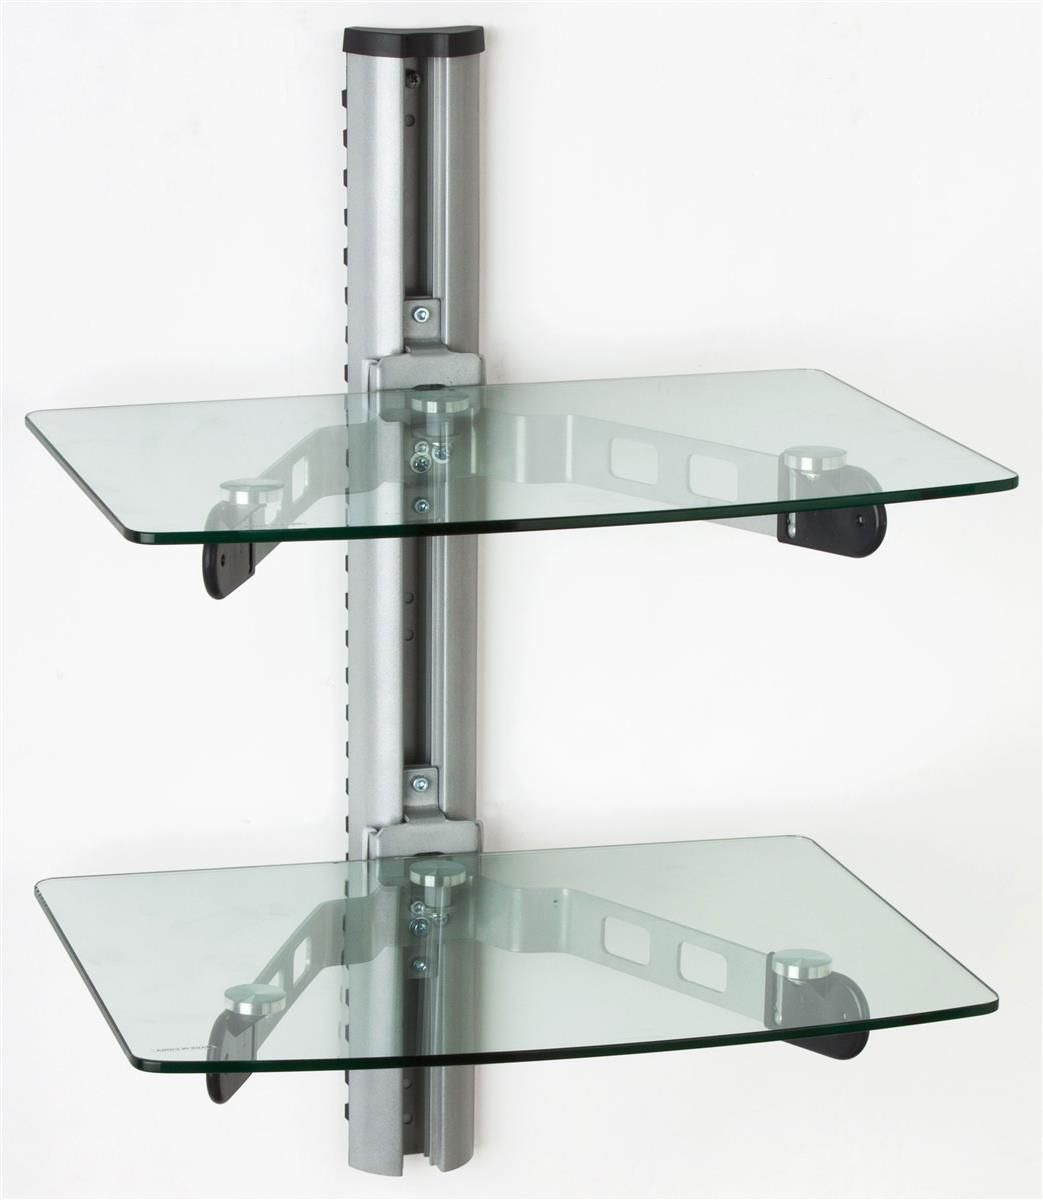 Glass Tv Shelf For Wall Mount Adjustable In Post Cable Management Glass Shelves Kitchen Glass Shelves Glass Shelf Brackets